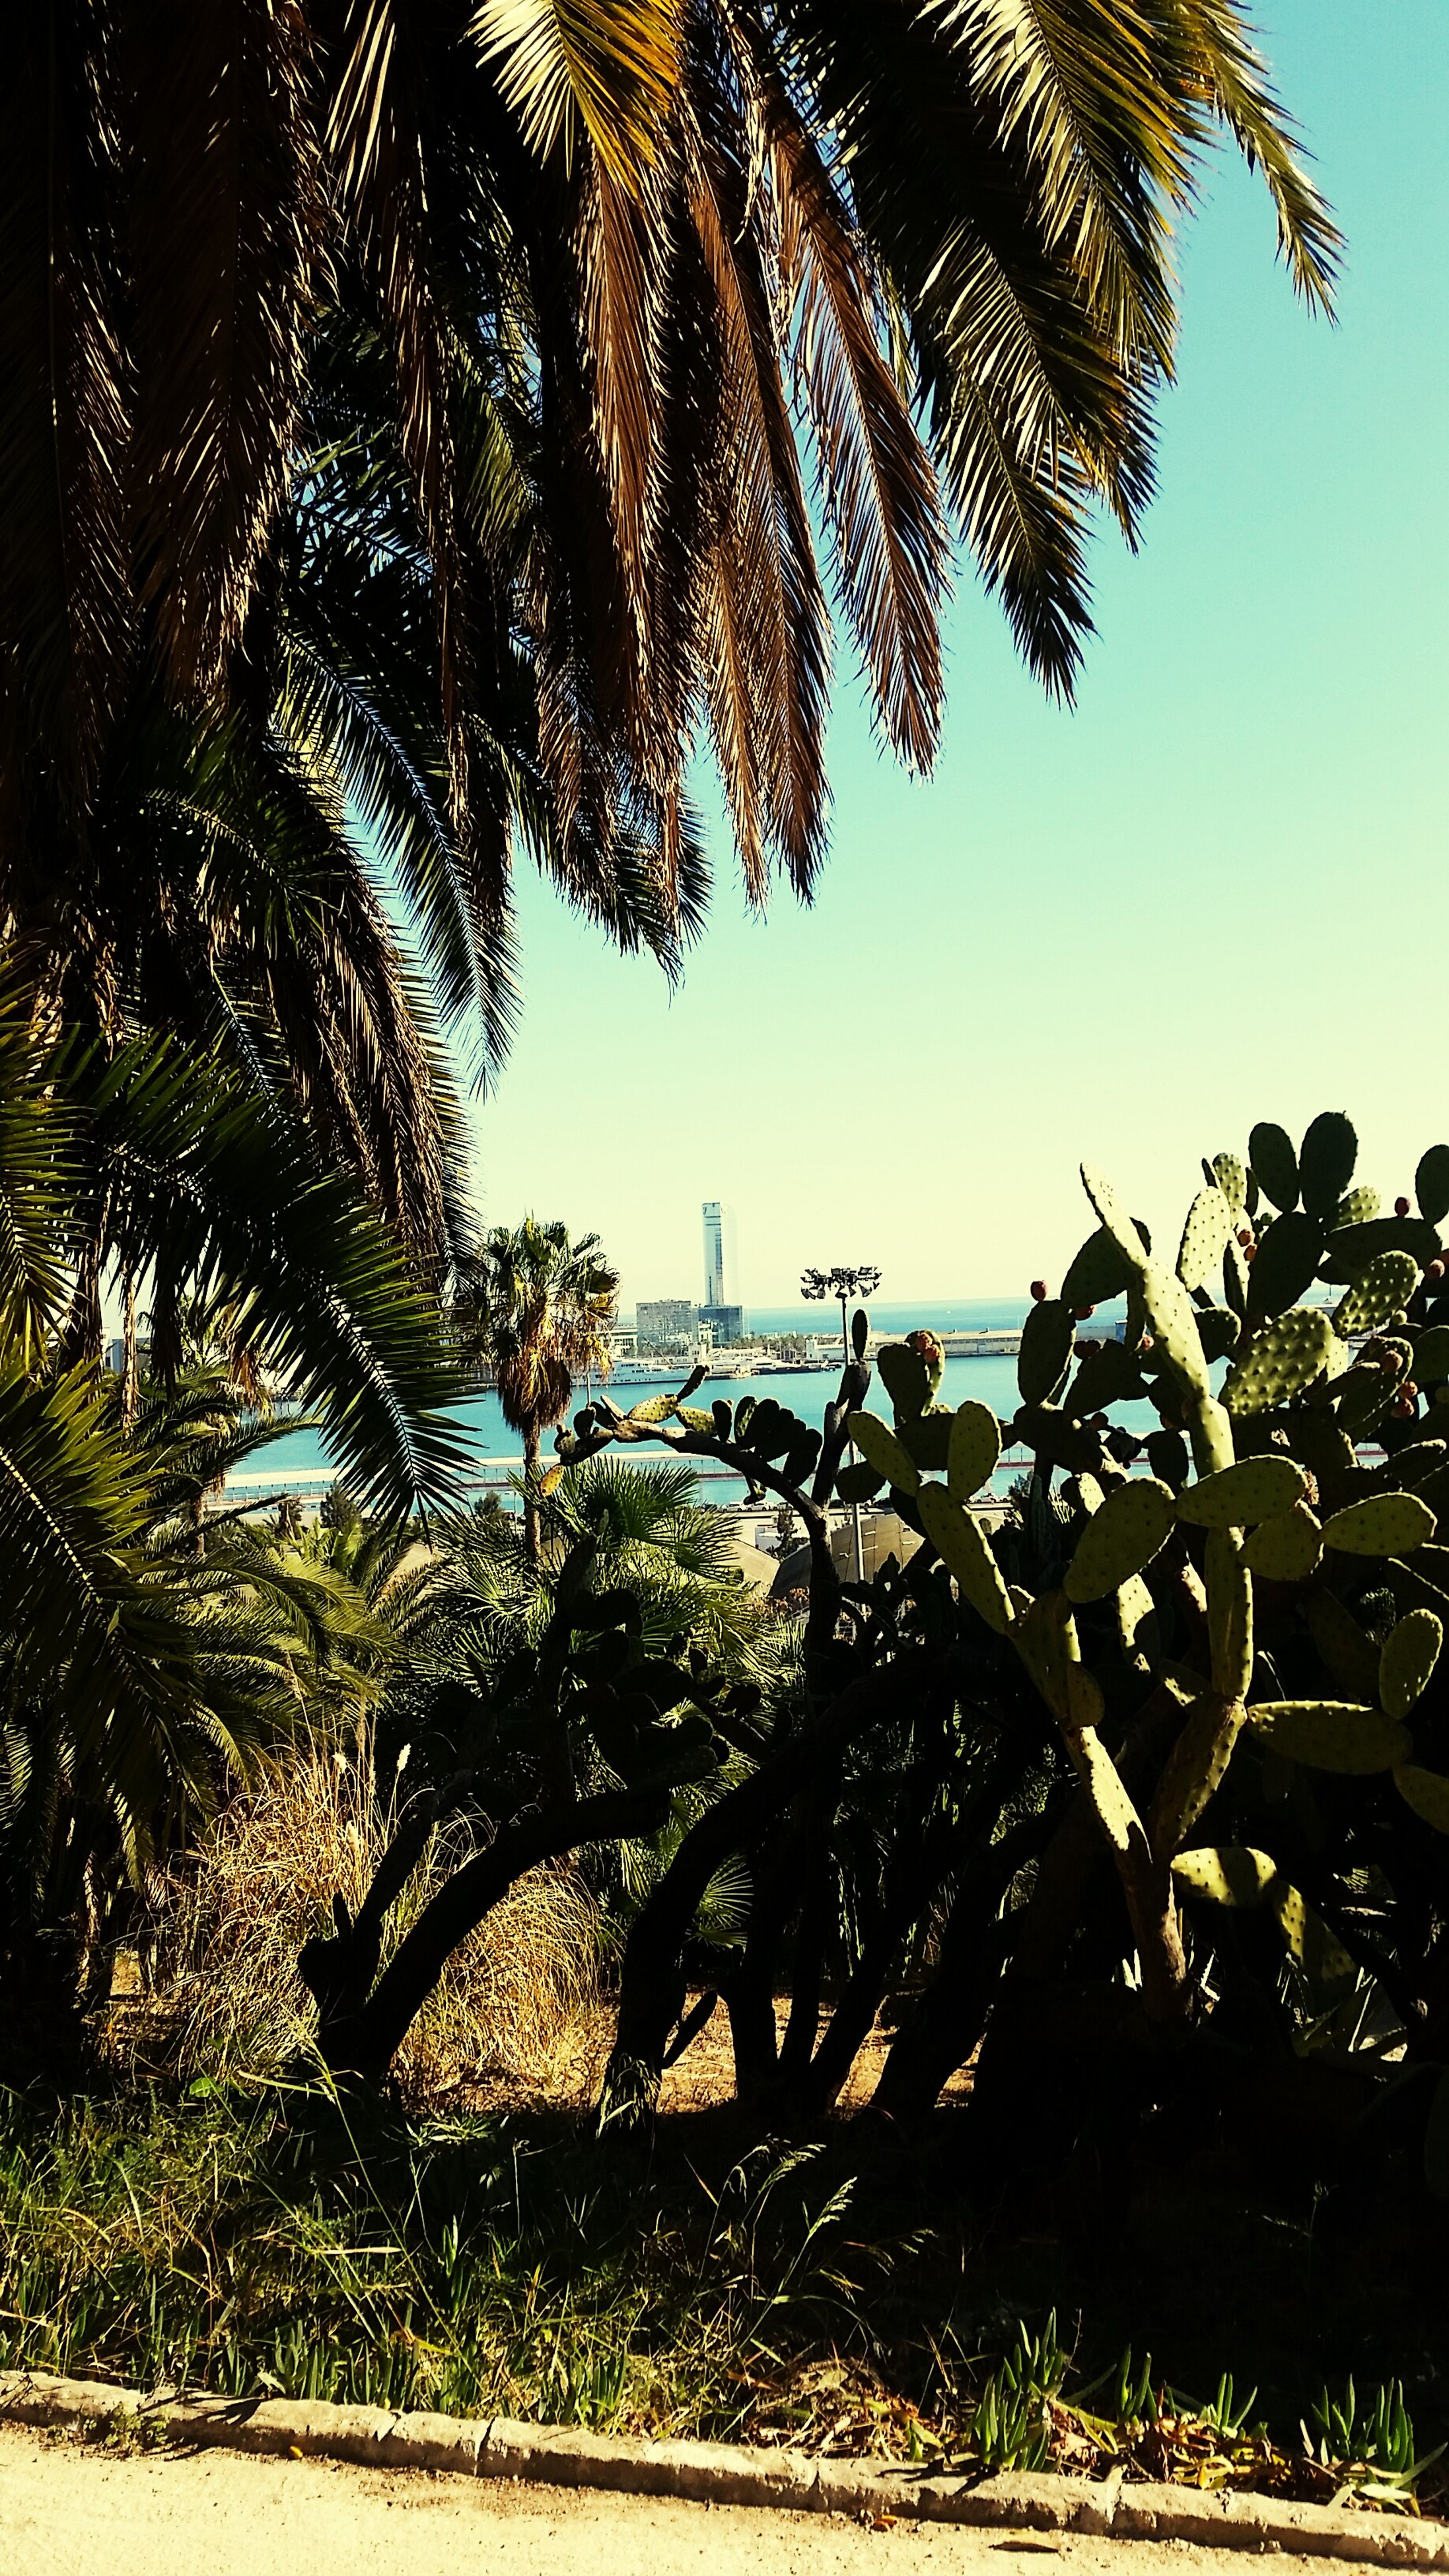 tree, palm tree, sea, horizon over water, beach, growth, clear sky, tranquility, nature, sky, water, branch, tranquil scene, scenics, beauty in nature, shore, sand, plant, sunlight, day